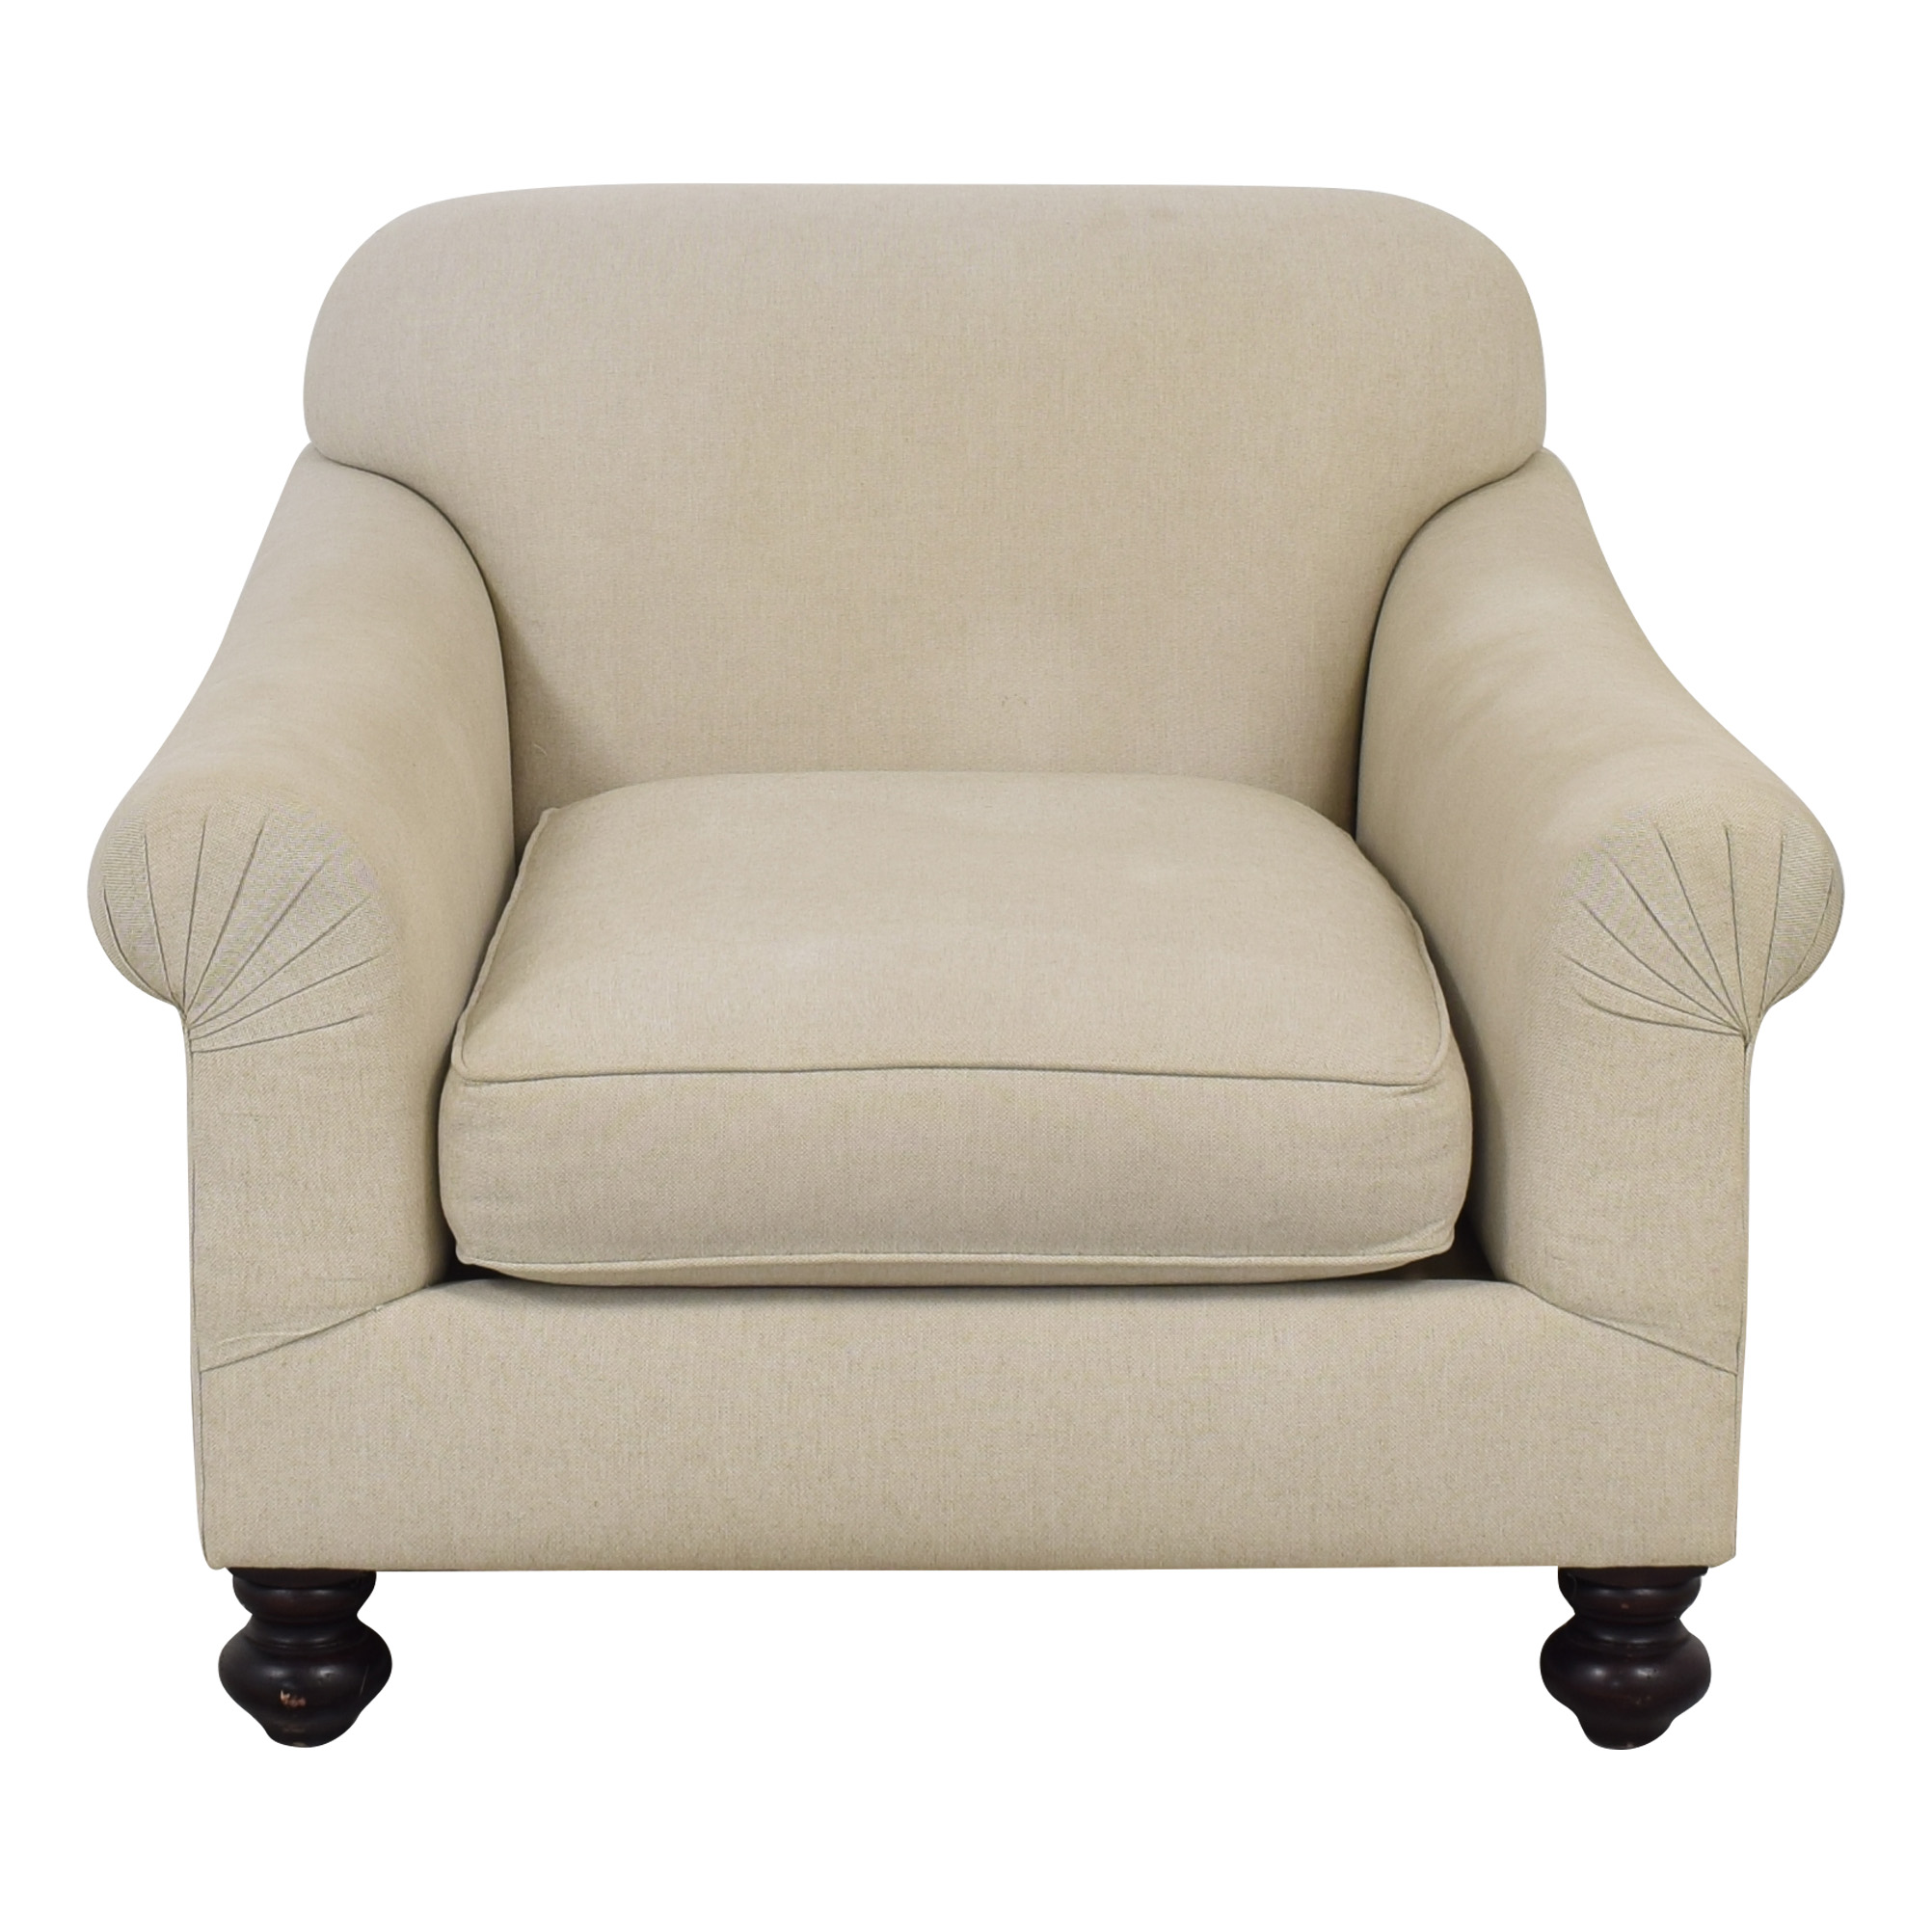 shop Ralph Lauren Home Ralph Lauren Home Club Chair online